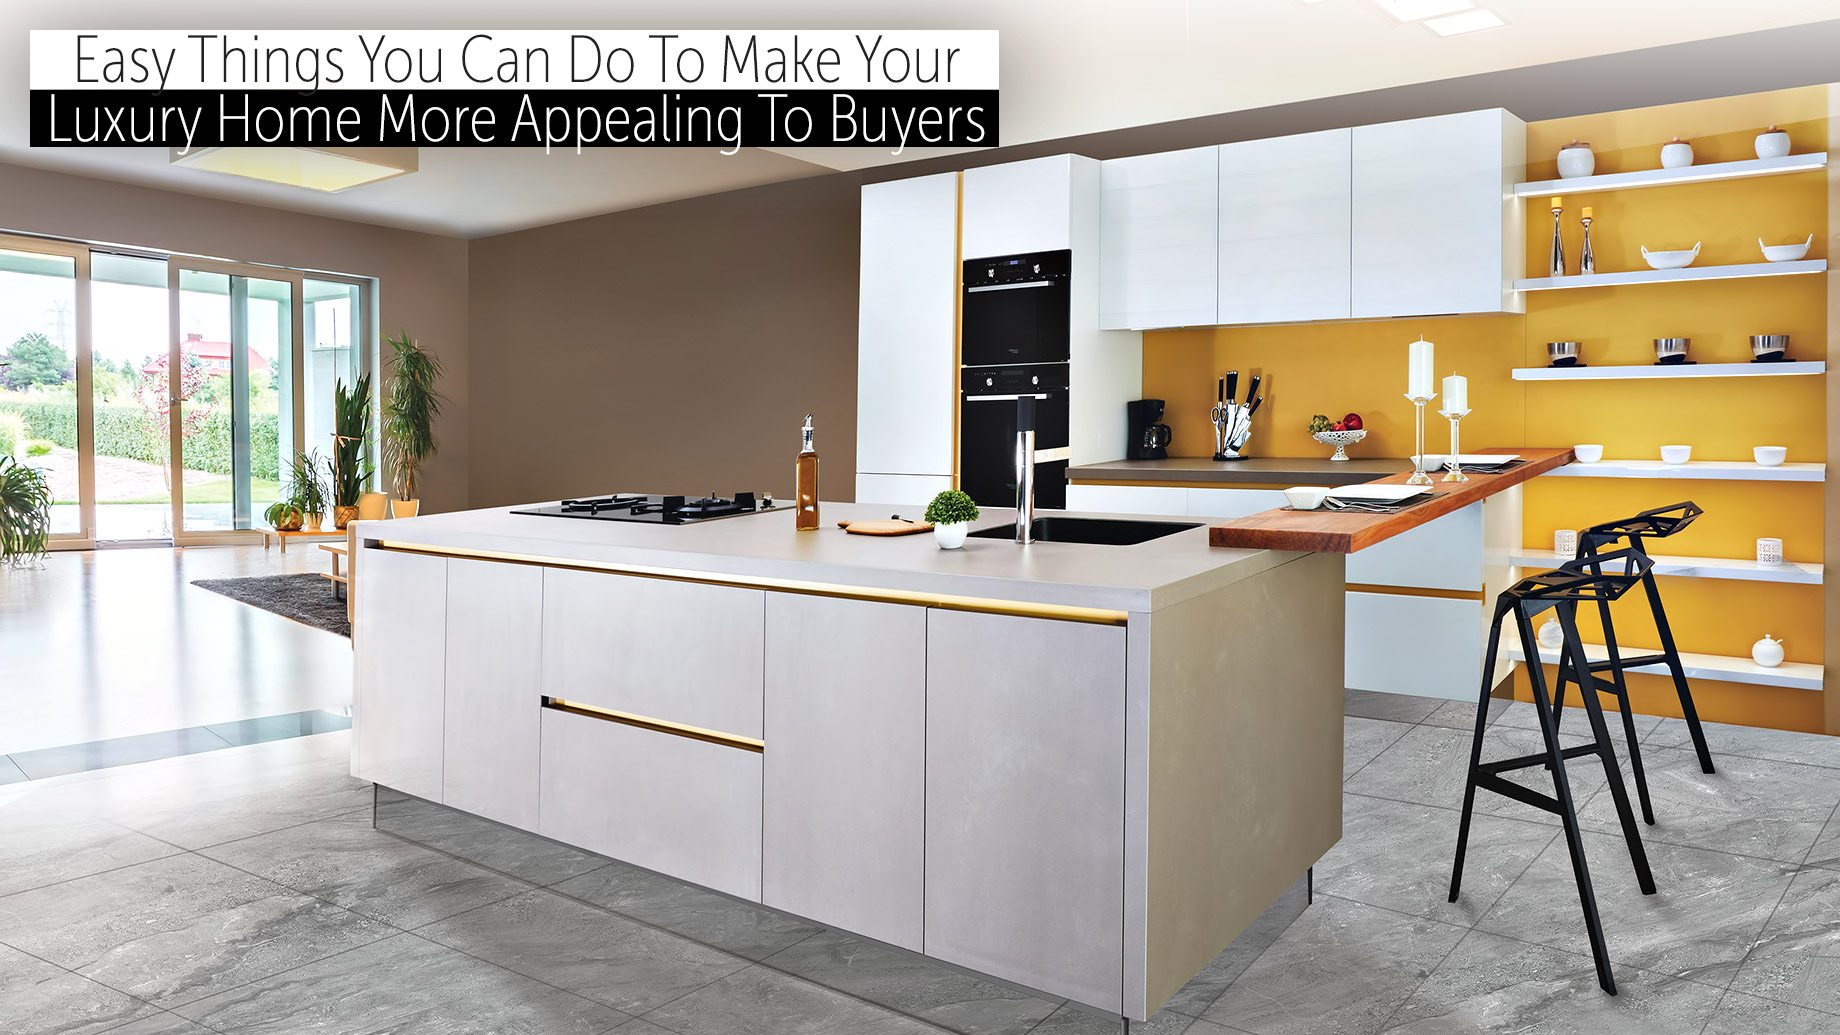 Easy Things You Can Do To Make Your Luxury Home More Appealing To Buyers